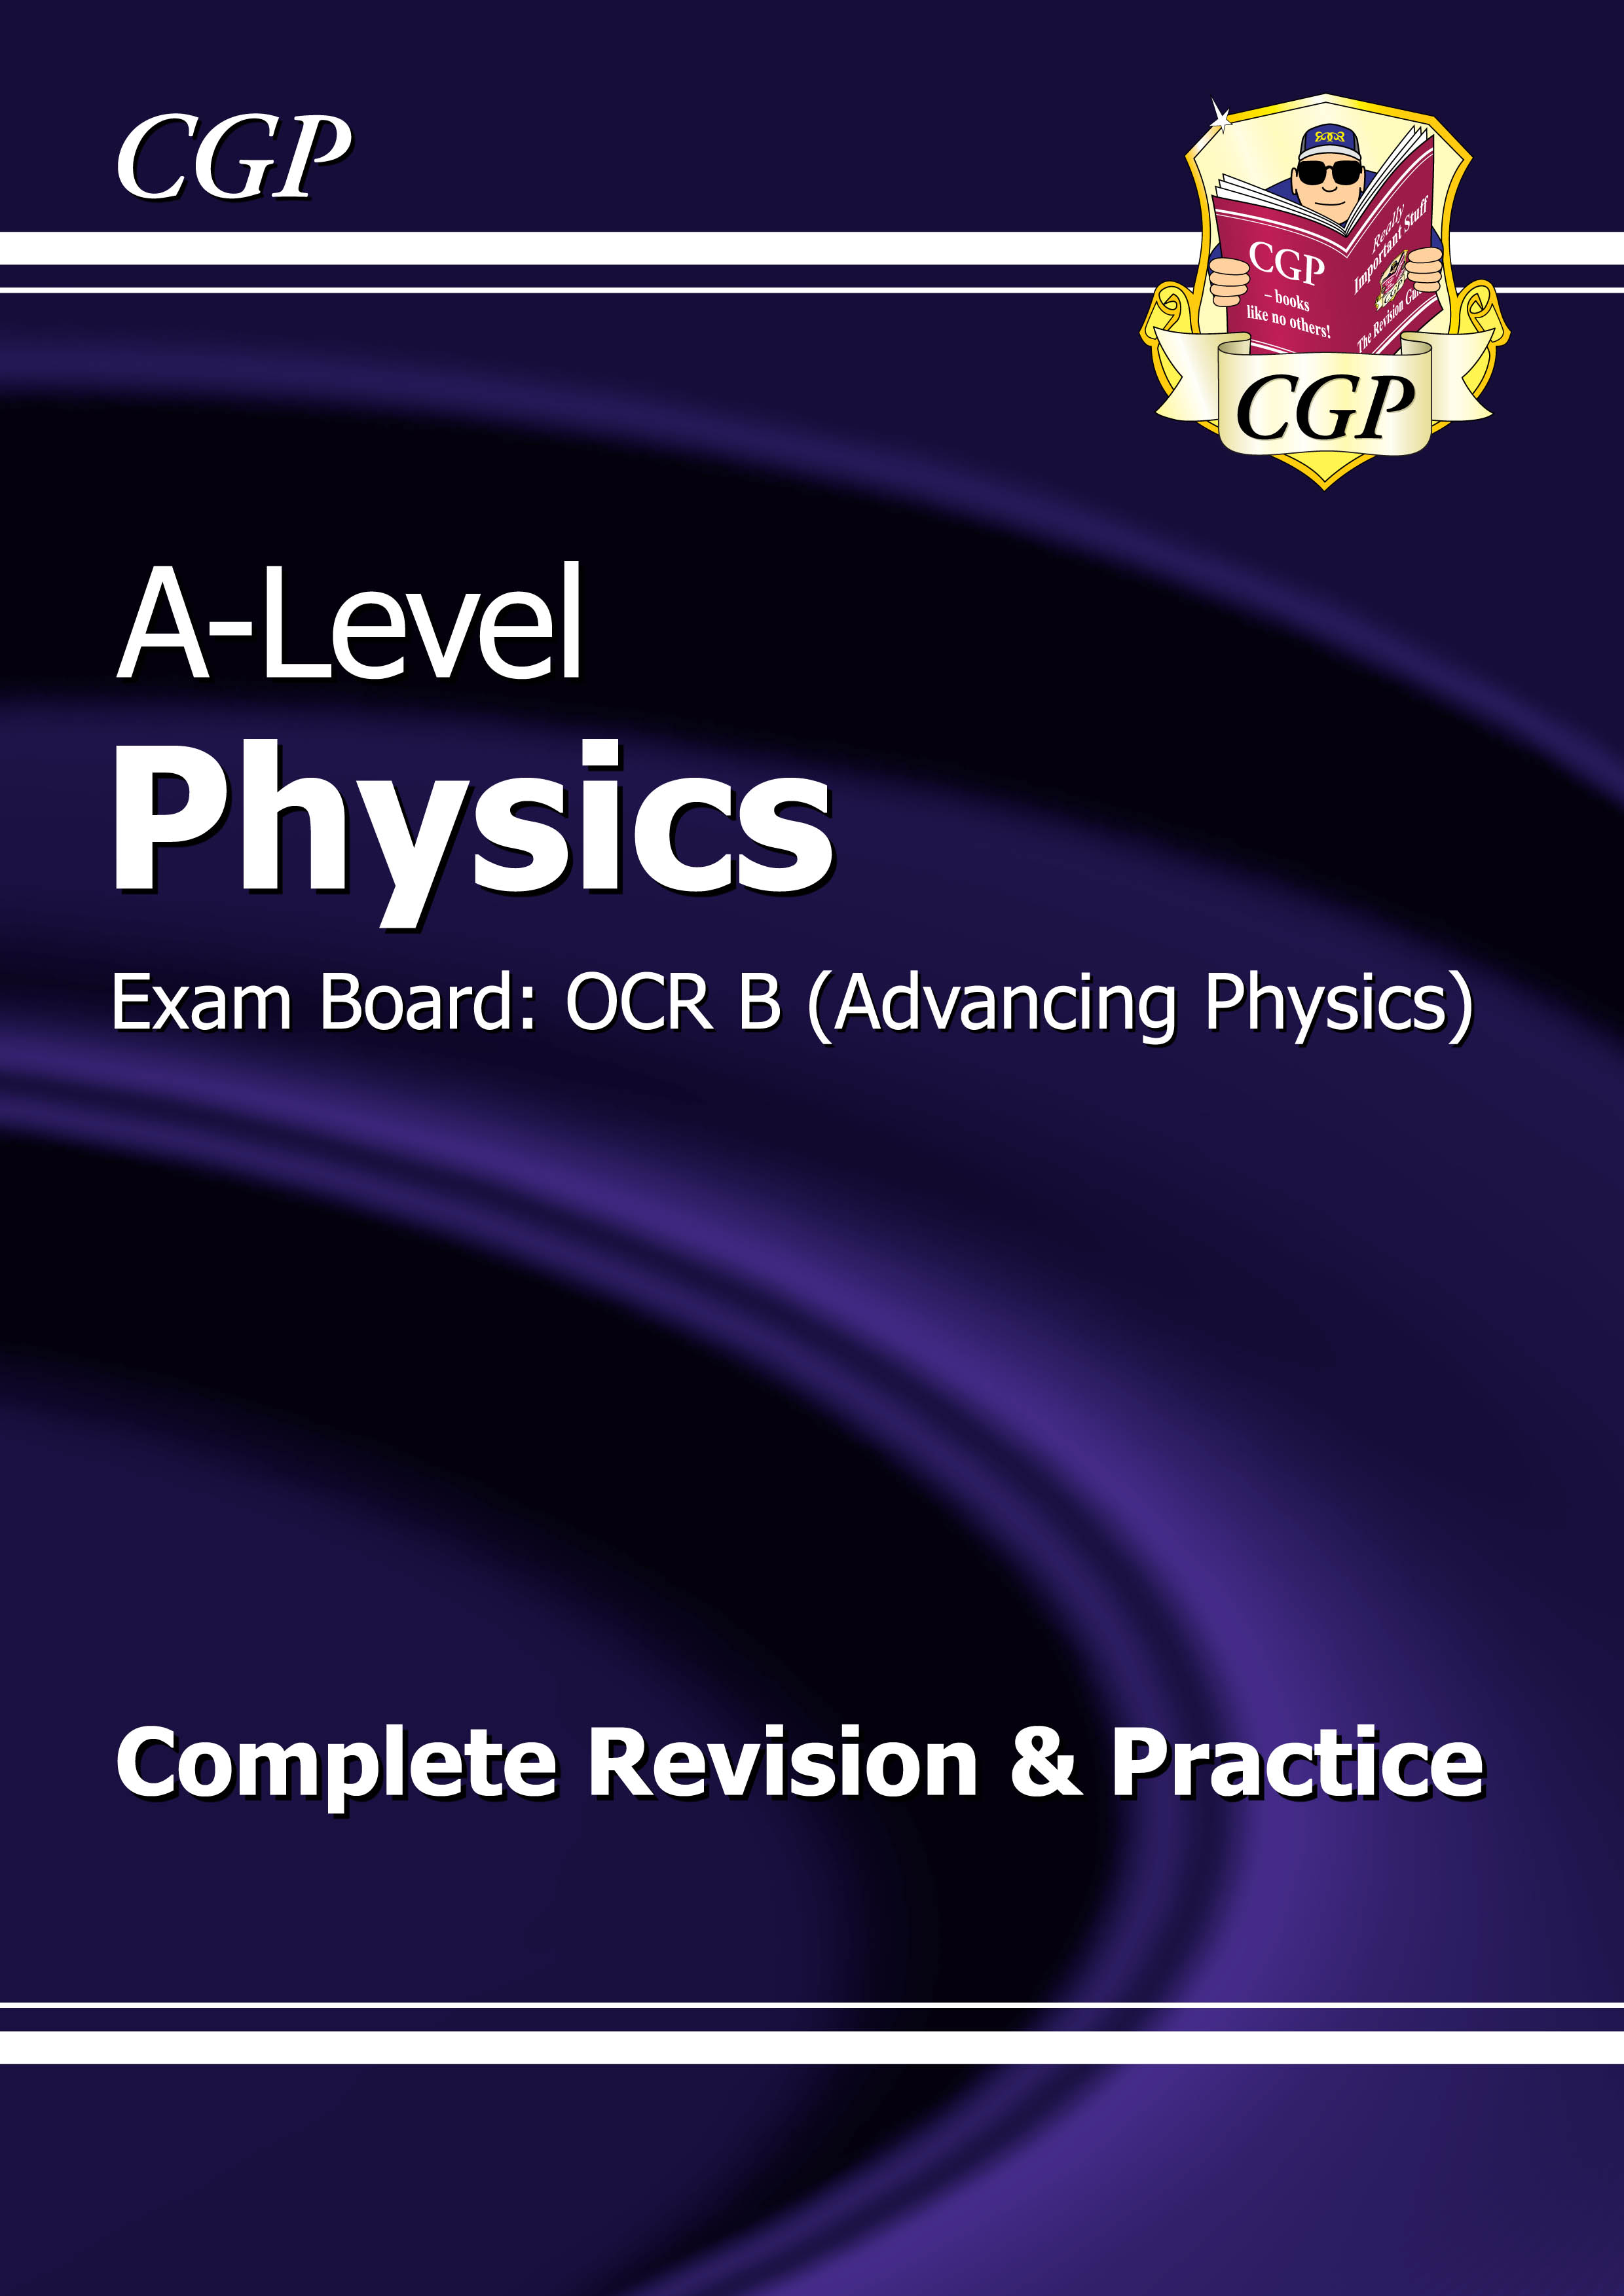 PRBR72DK - A-Level Physics: OCR B Year 1 & 2 Complete Revision & Practice